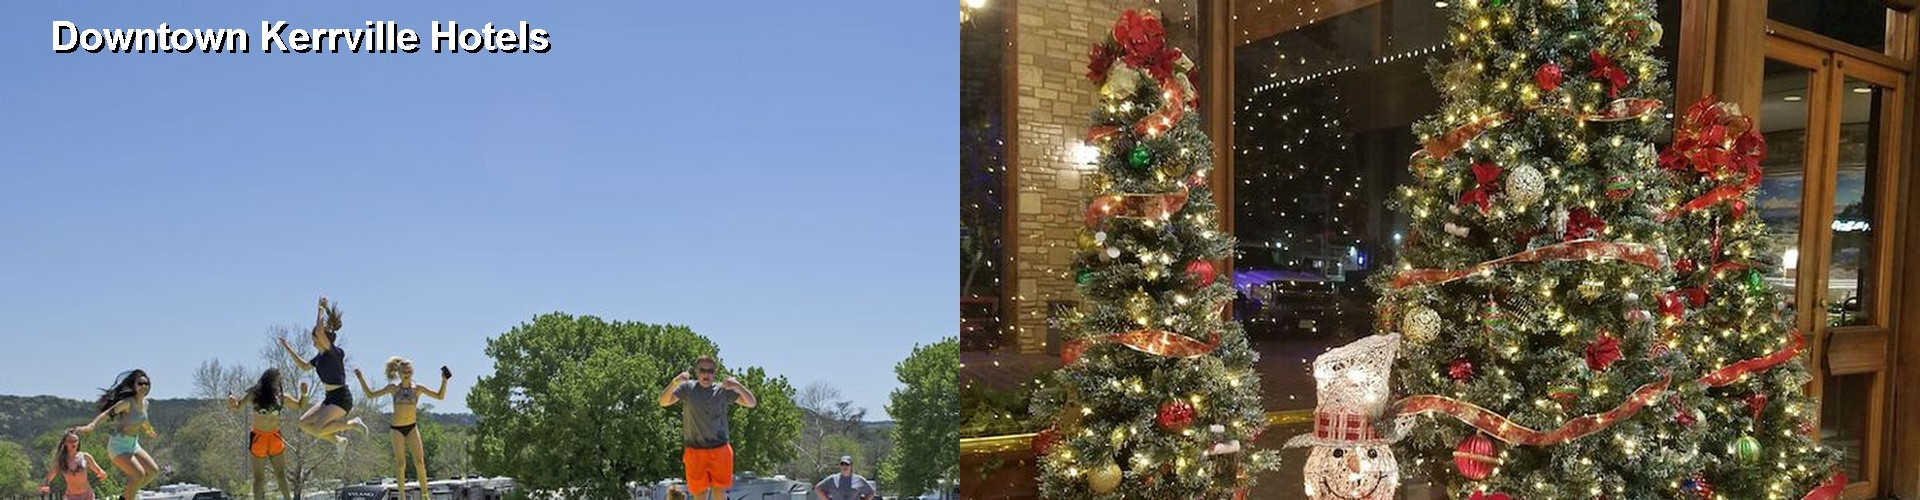 5 Best Hotels near Downtown Kerrville